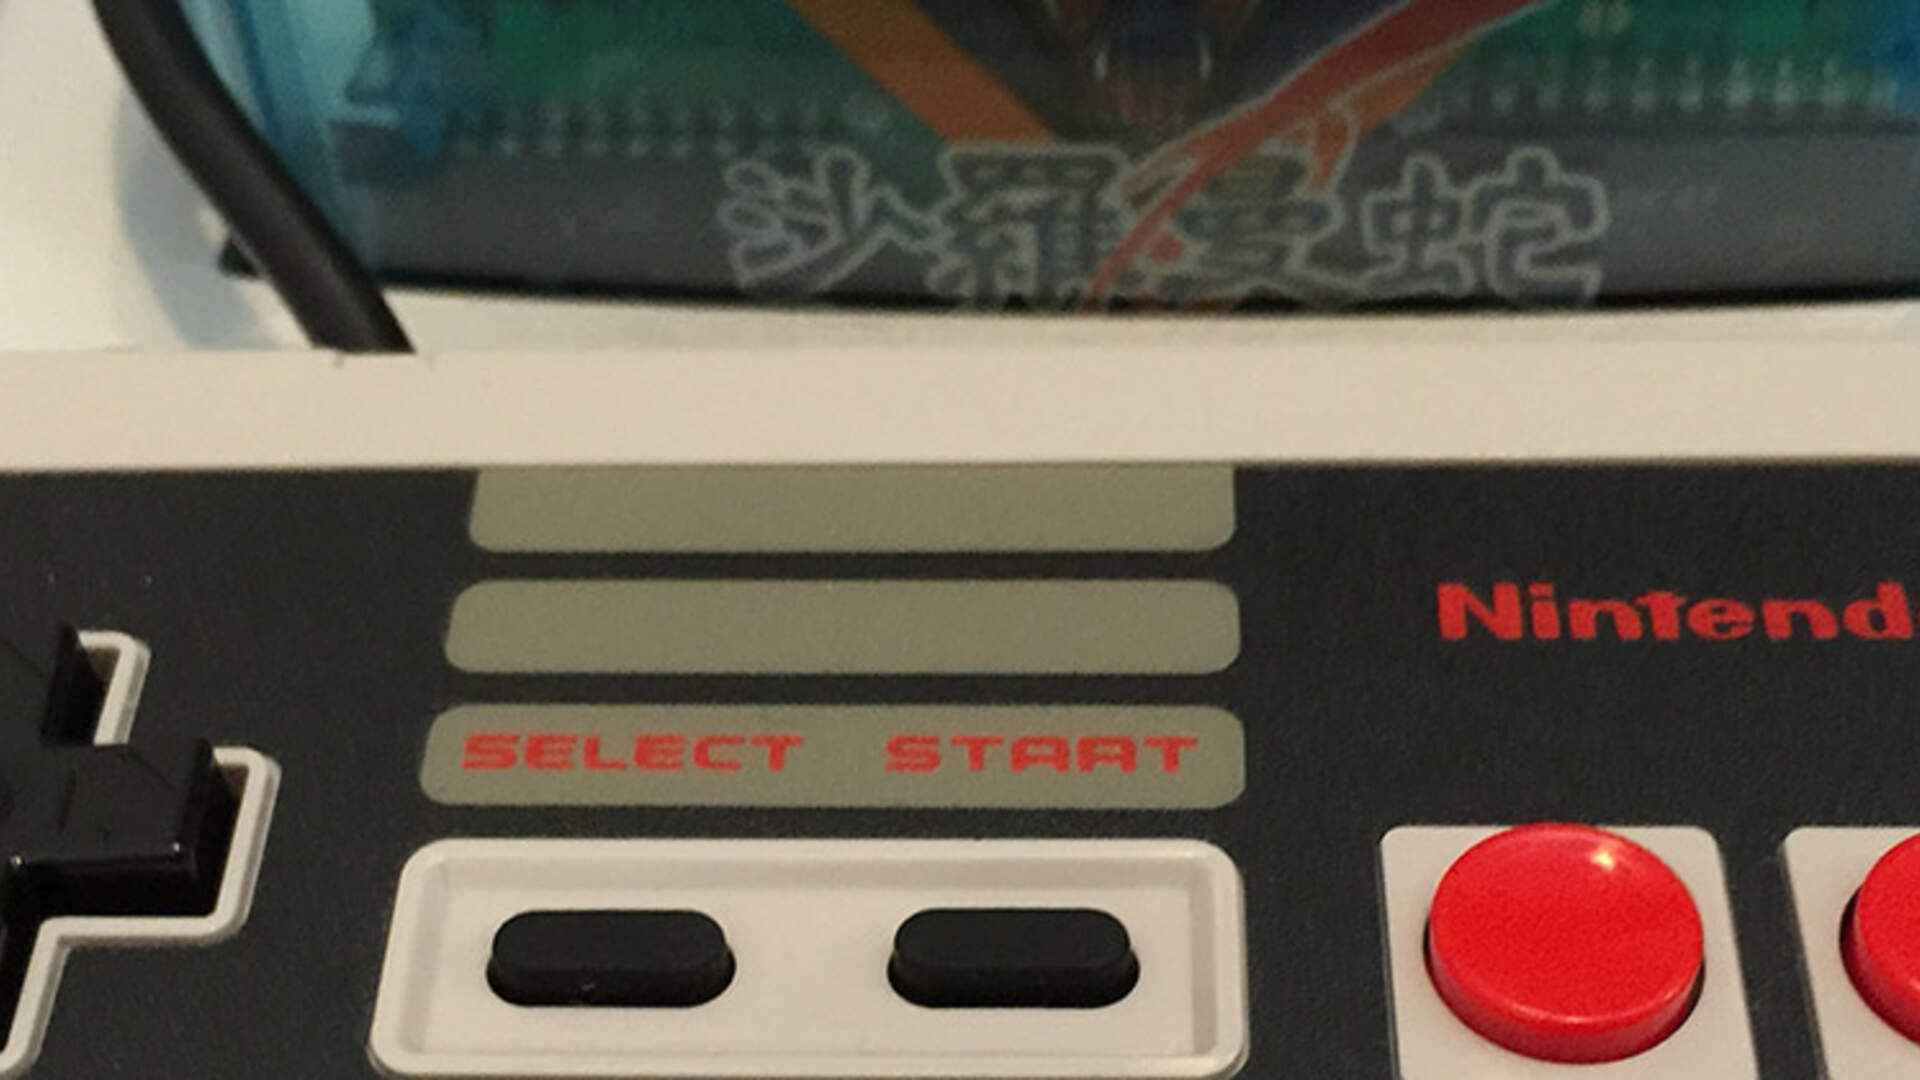 The Quest for the Perfect Retro Game Experience